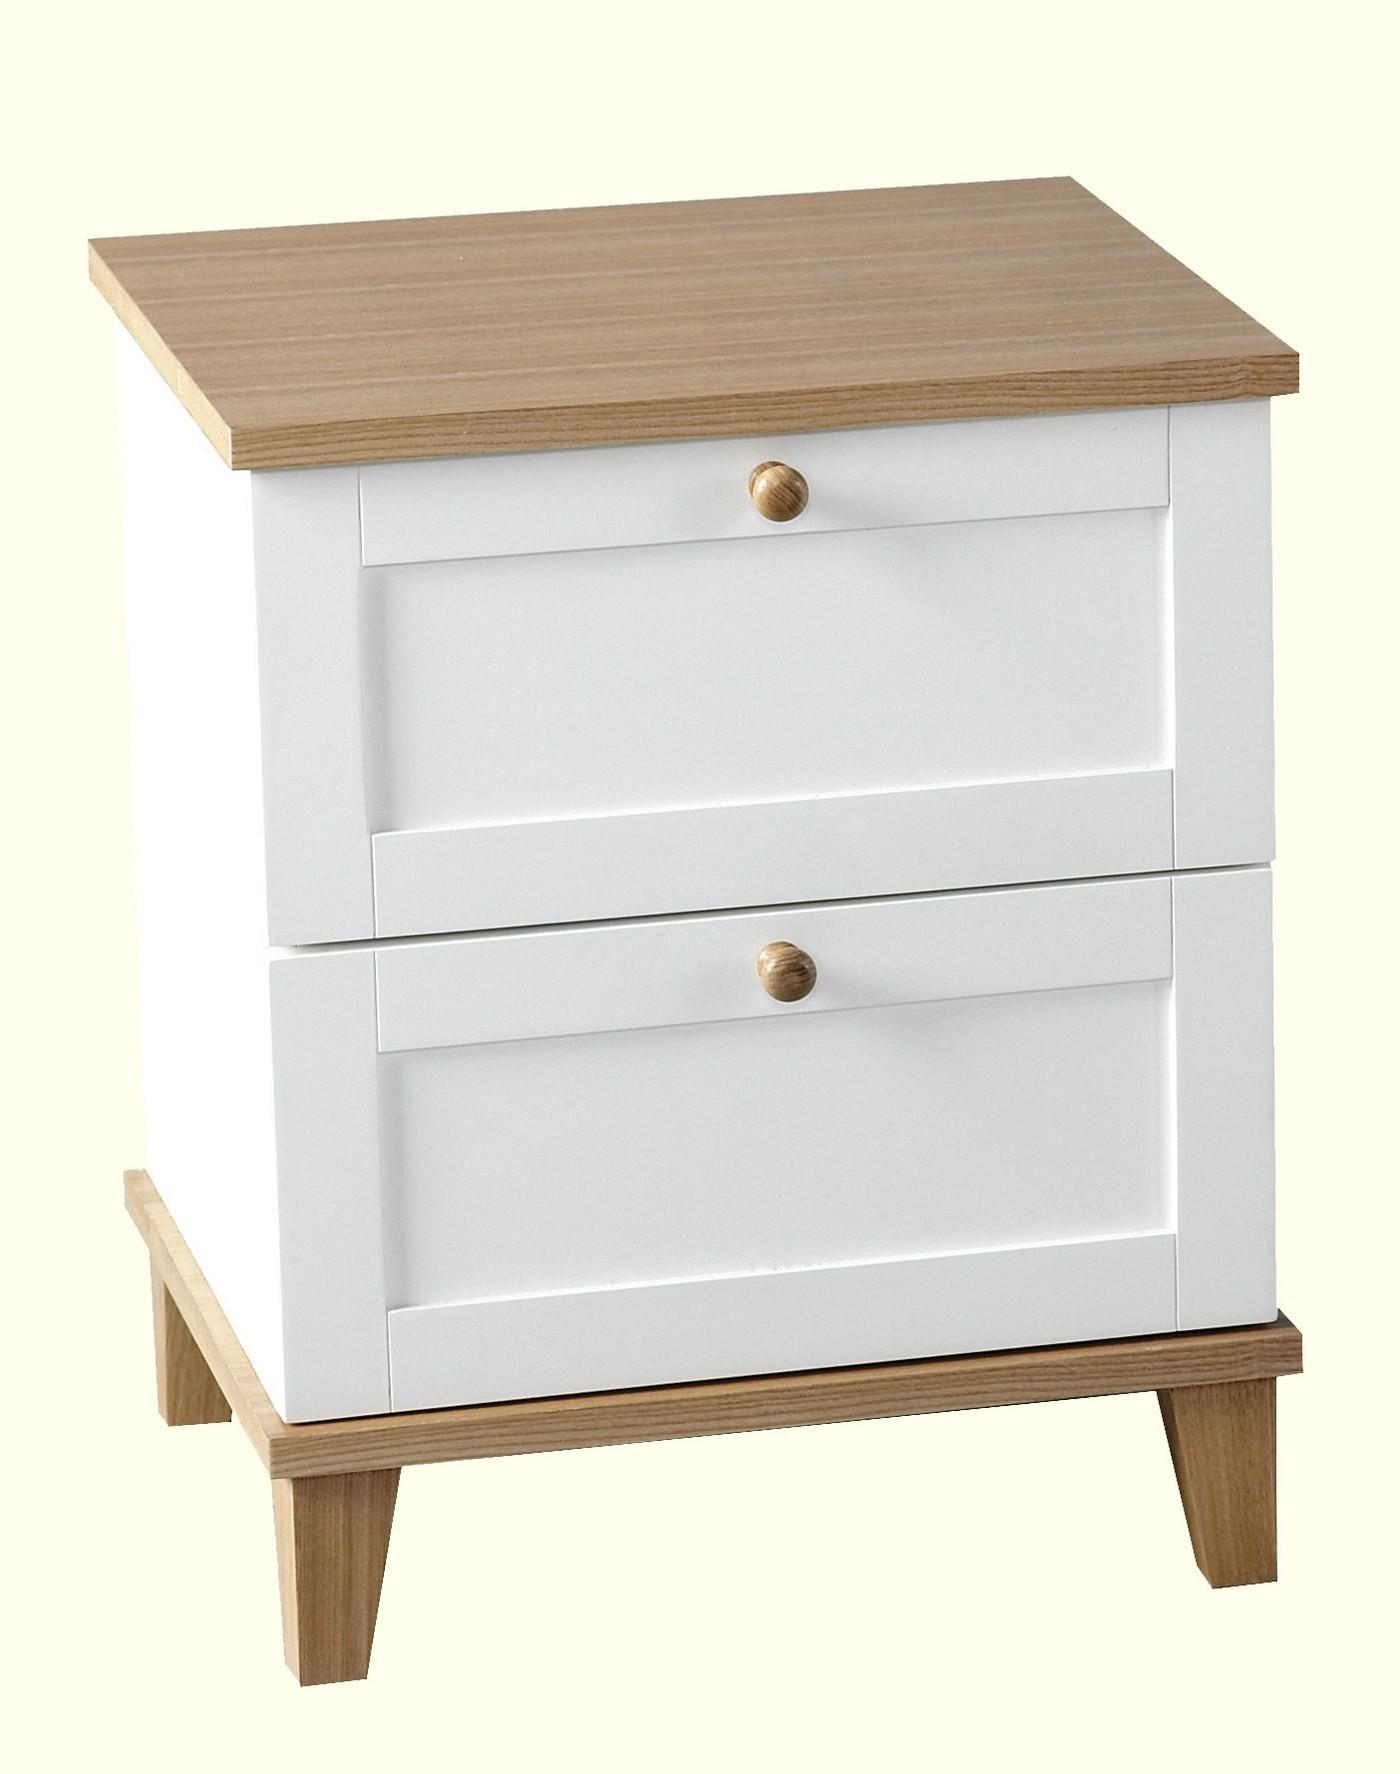 Bedroom End Table Small Modern Bedside Tables